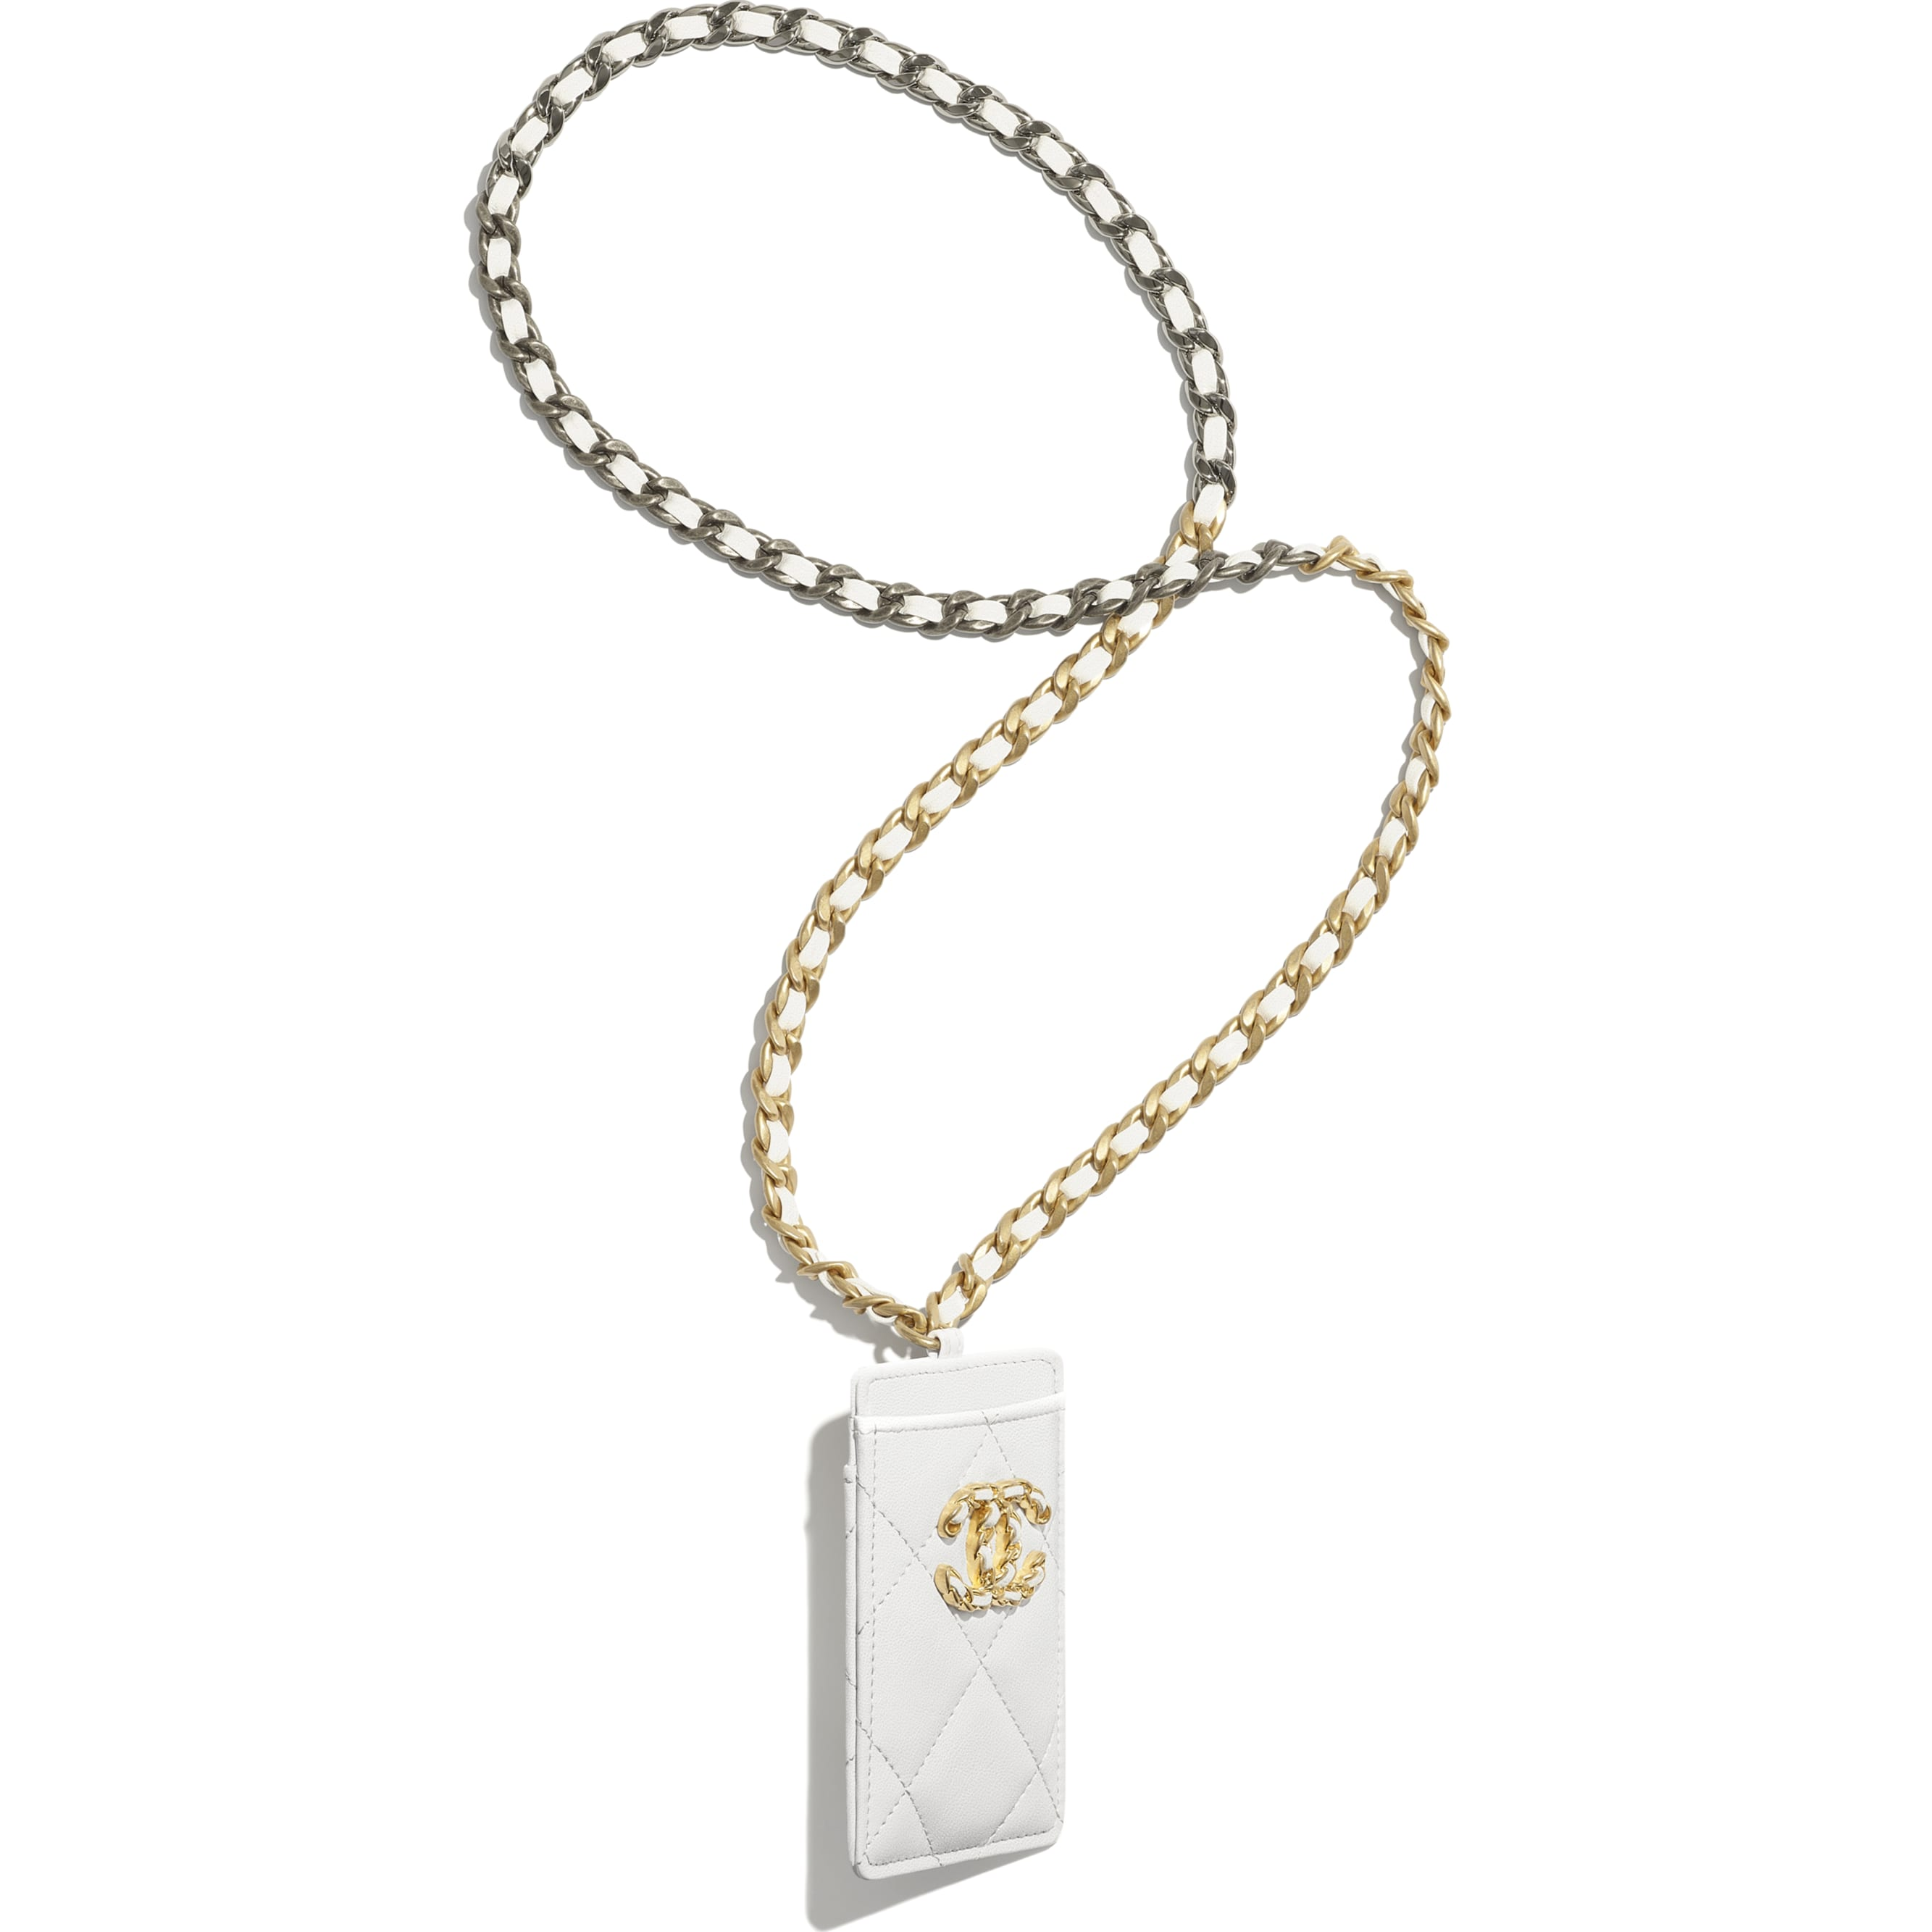 CHANEL 19 Badge Holder - White - Lambskin, Gold-Tone, Silver-Tone & Ruthenium-Finish Metal - CHANEL - Alternative view - see standard sized version